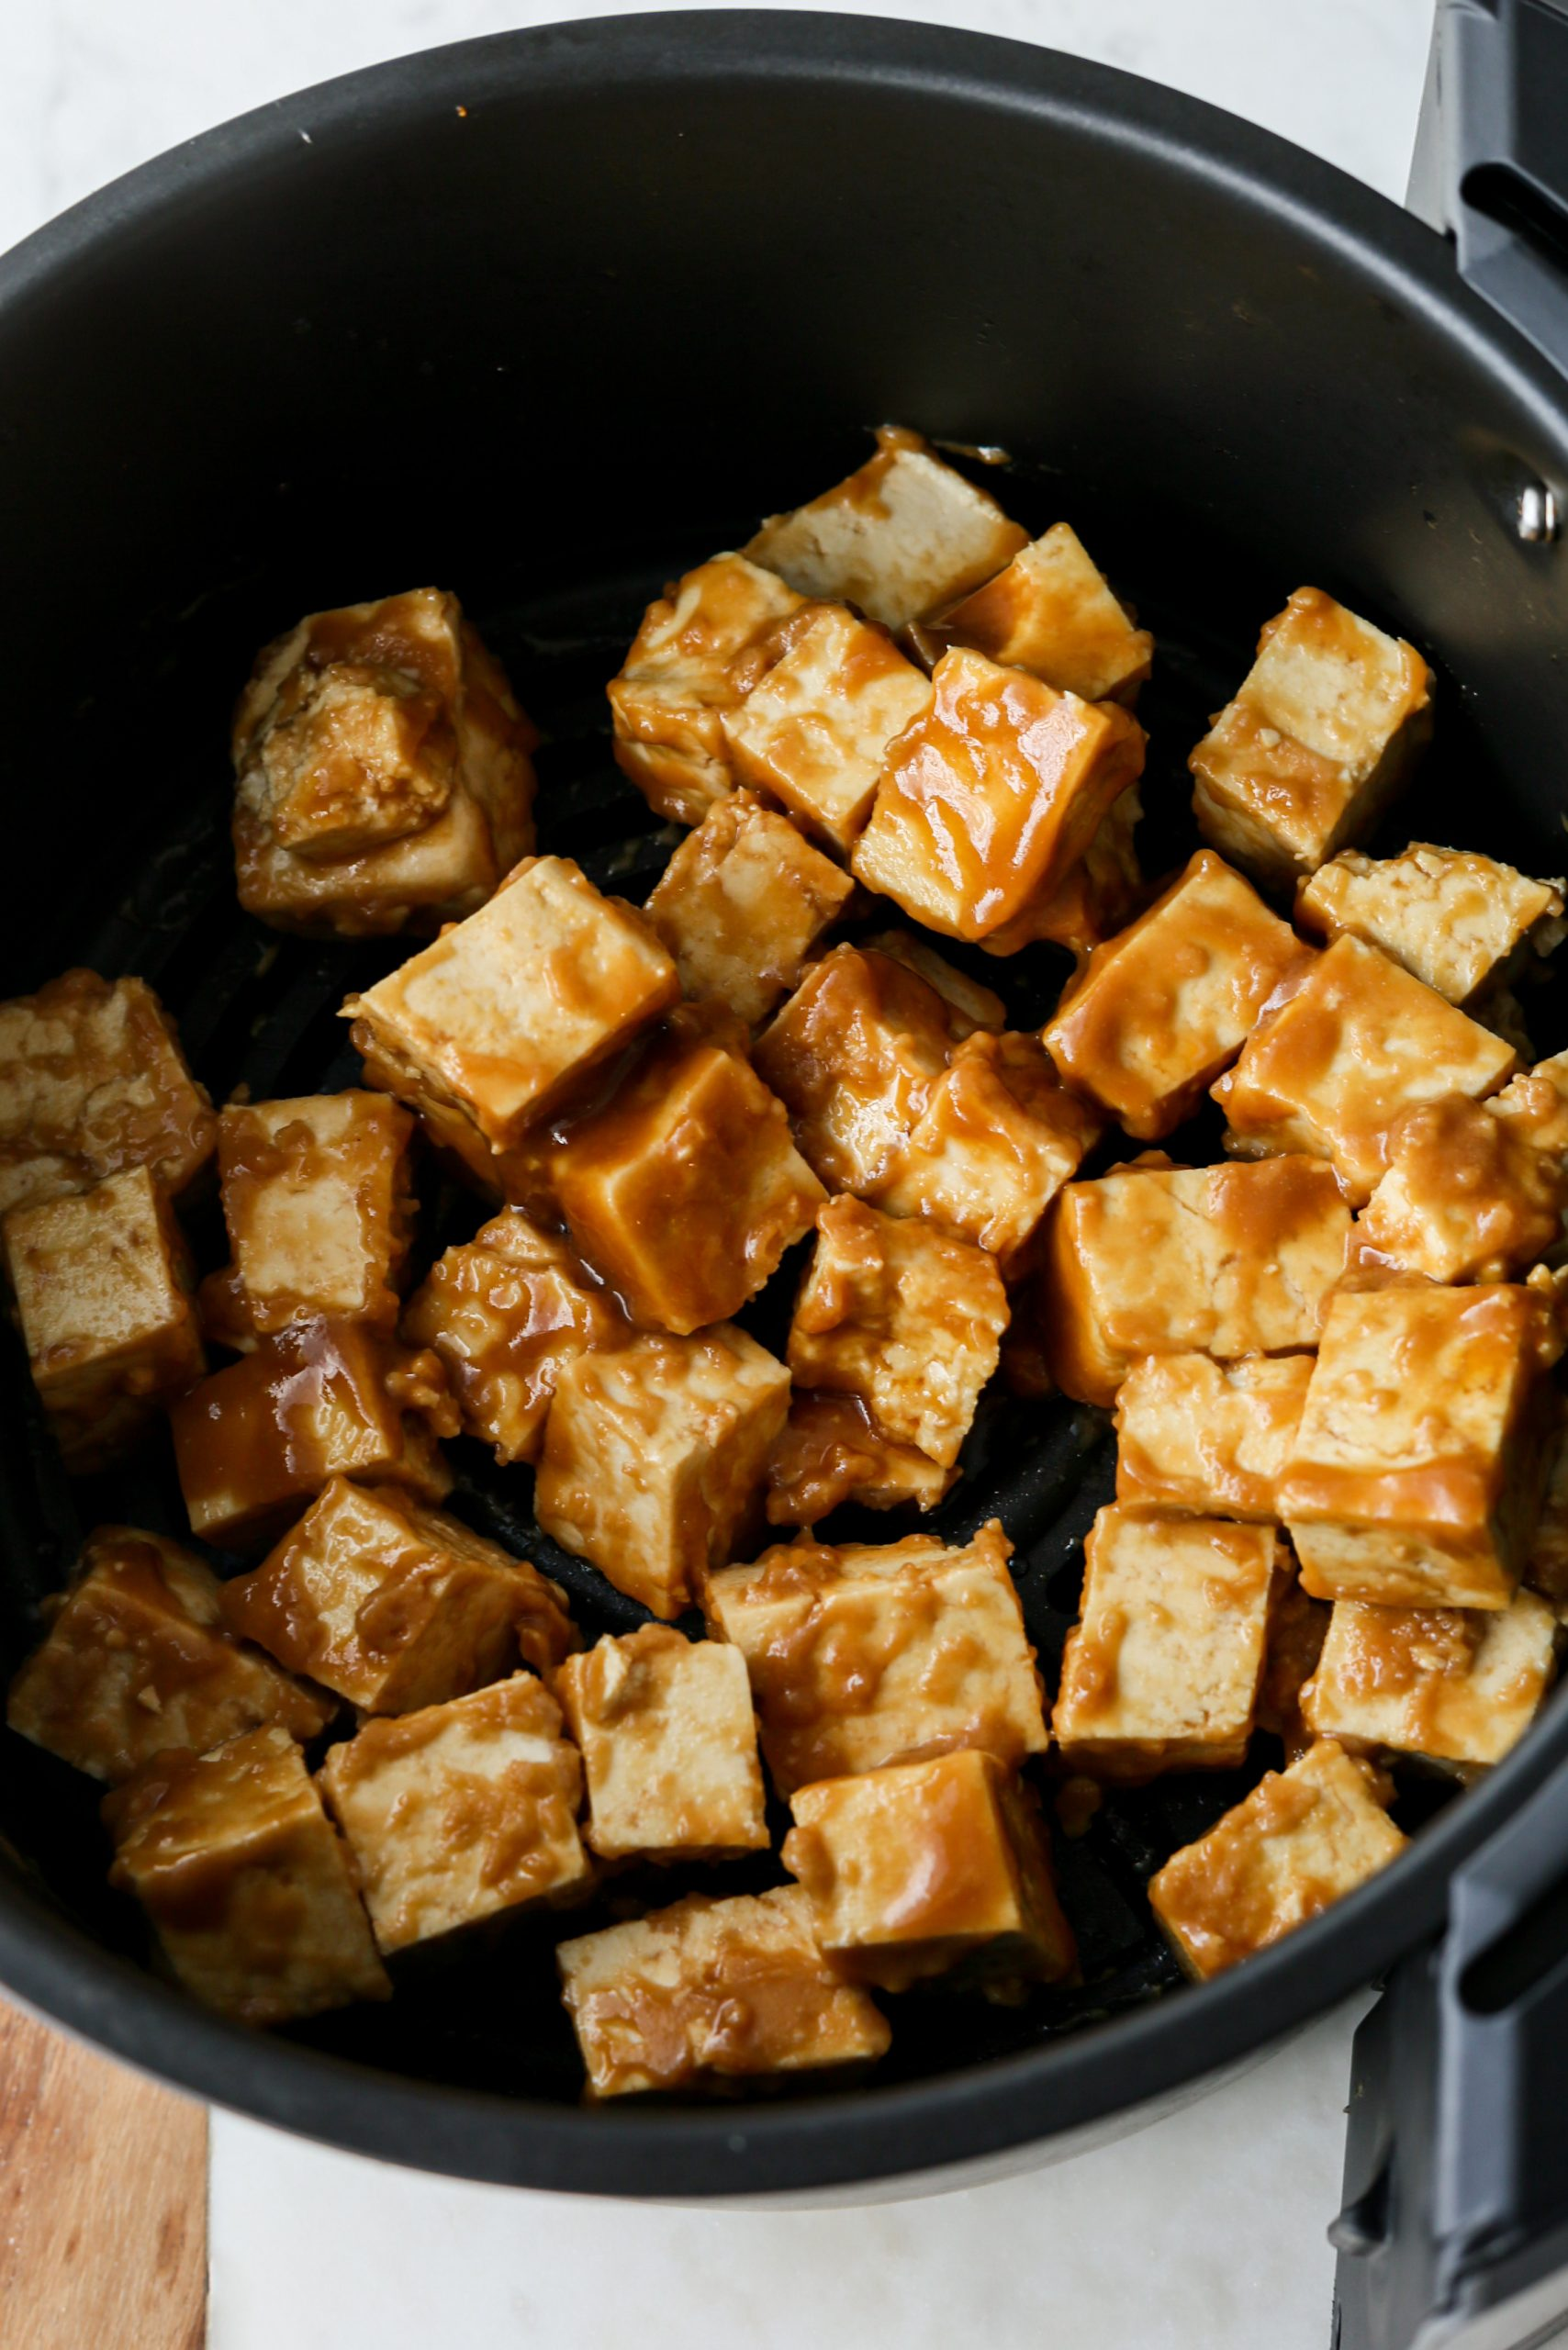 coated cubes of tofu in an air fryer.